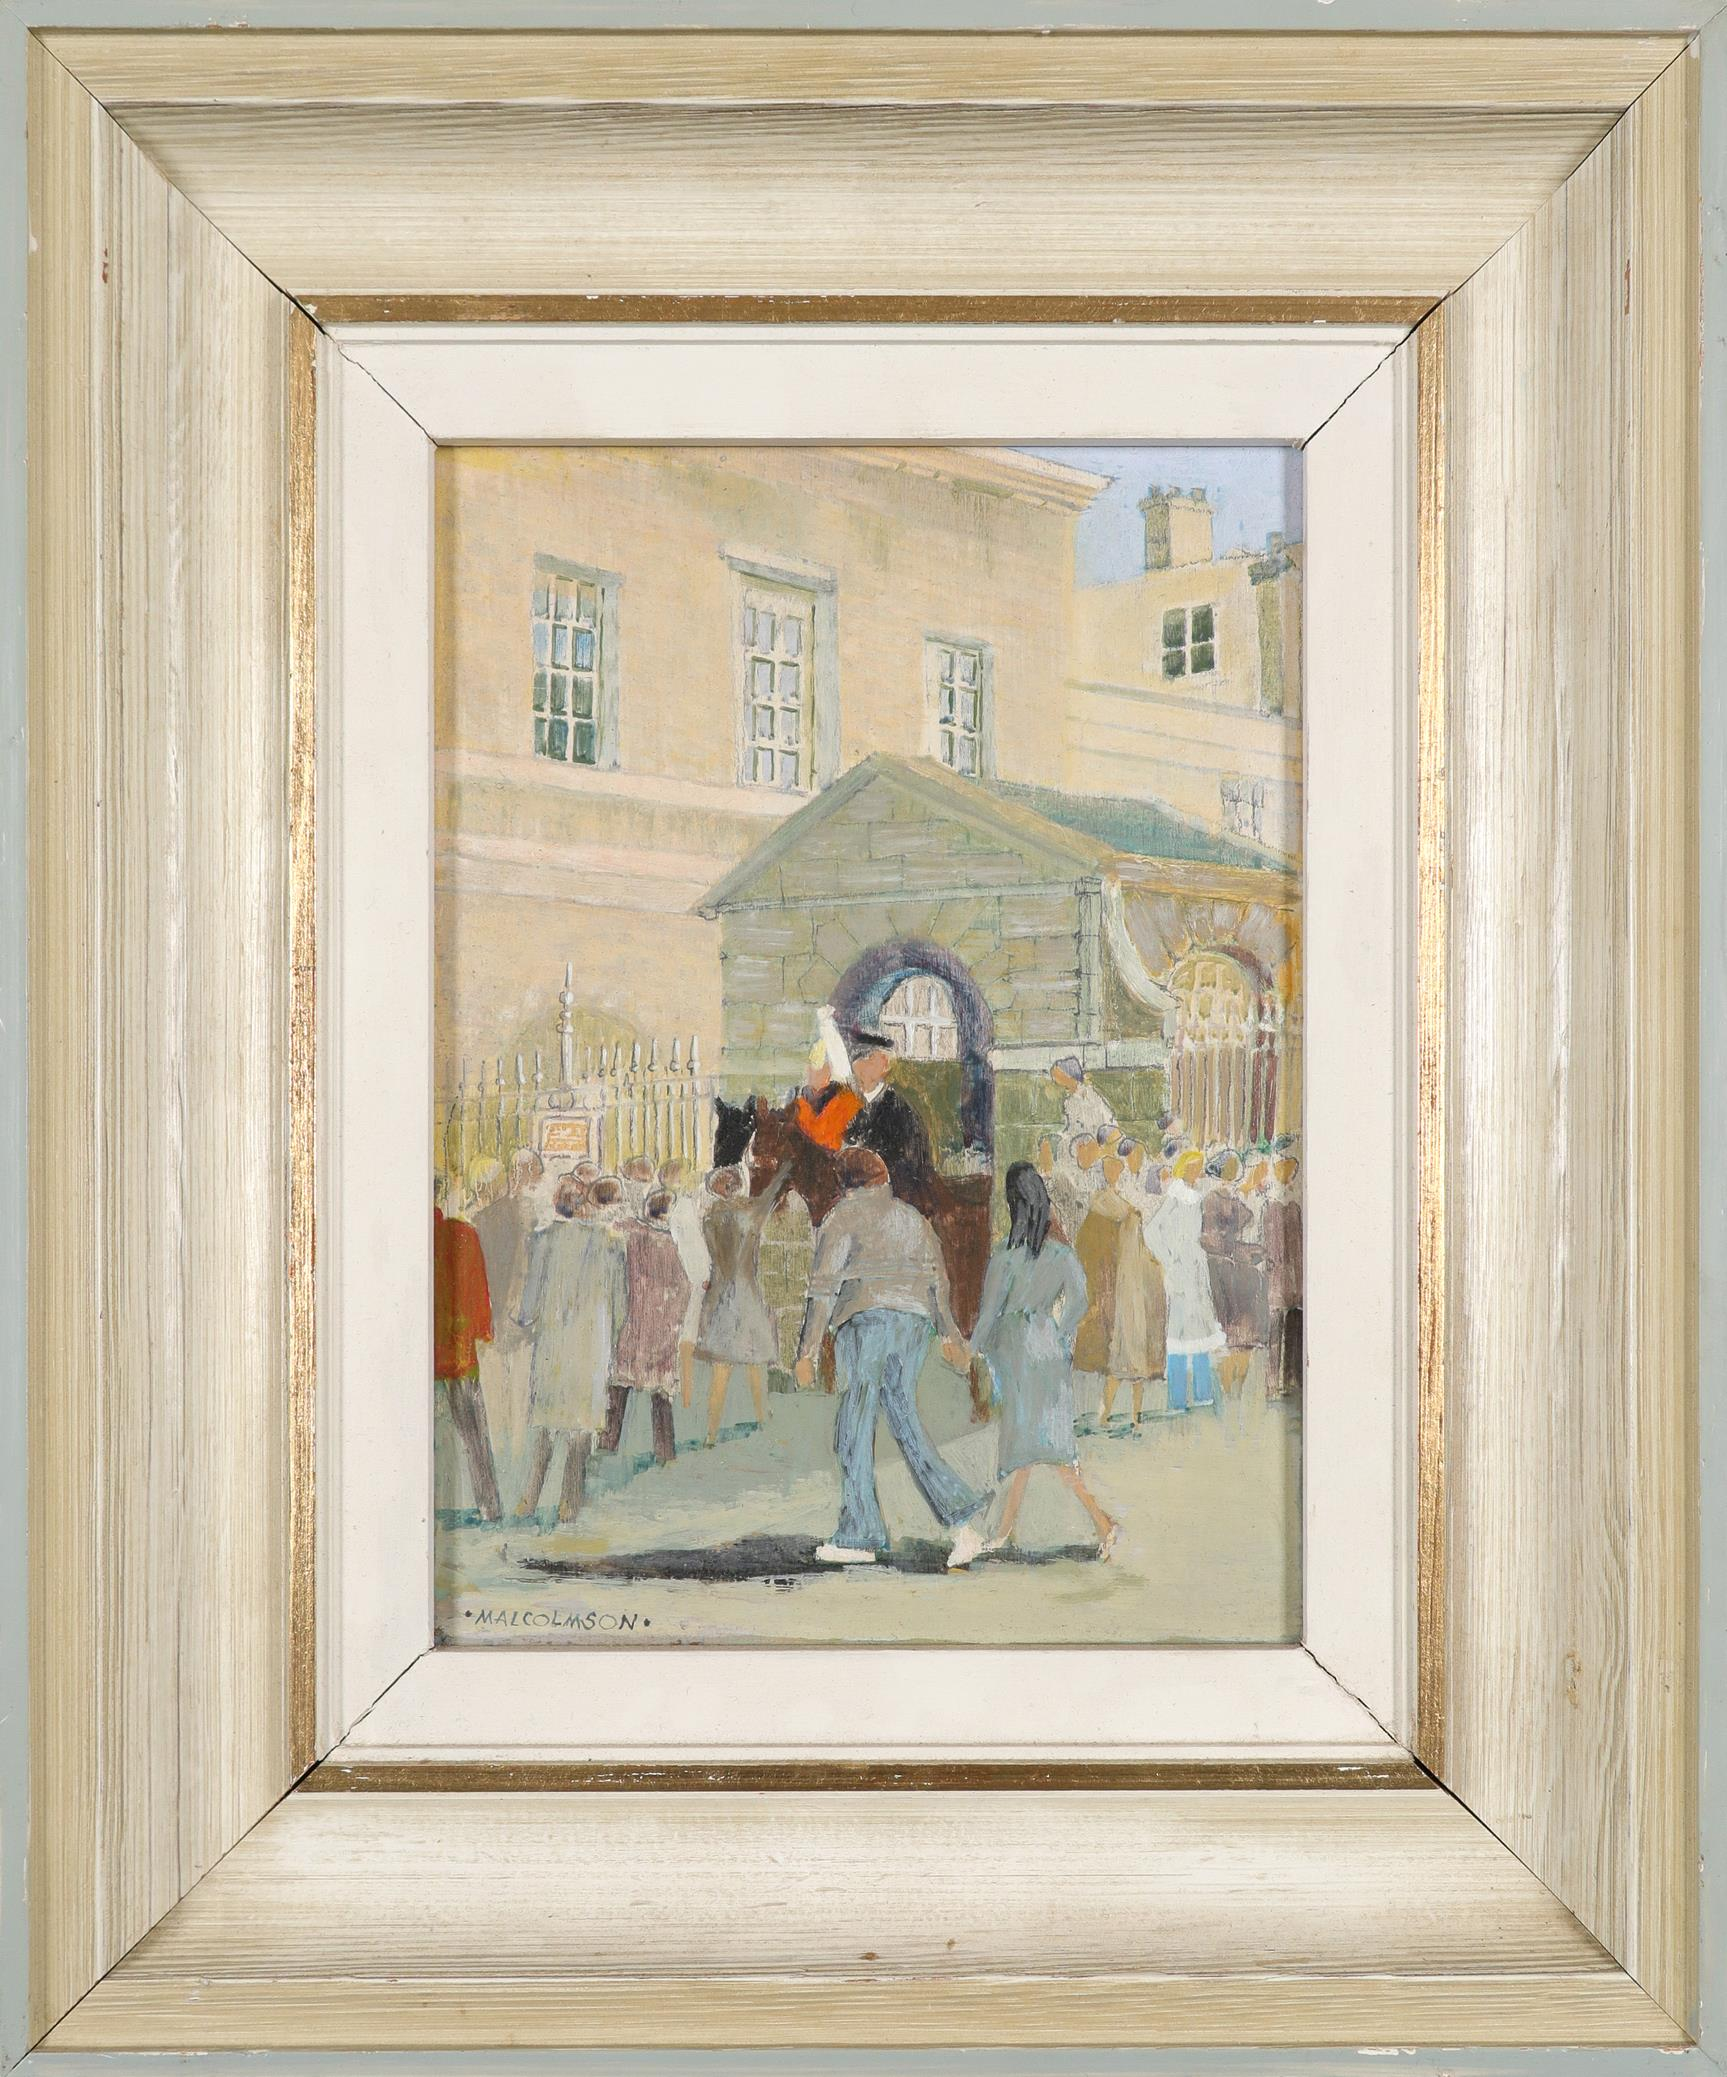 ‡Joe Malcolmson (Contemporary) The changing of the guard Signed MALCOLMSON (lower left) Oil on board - Image 2 of 3